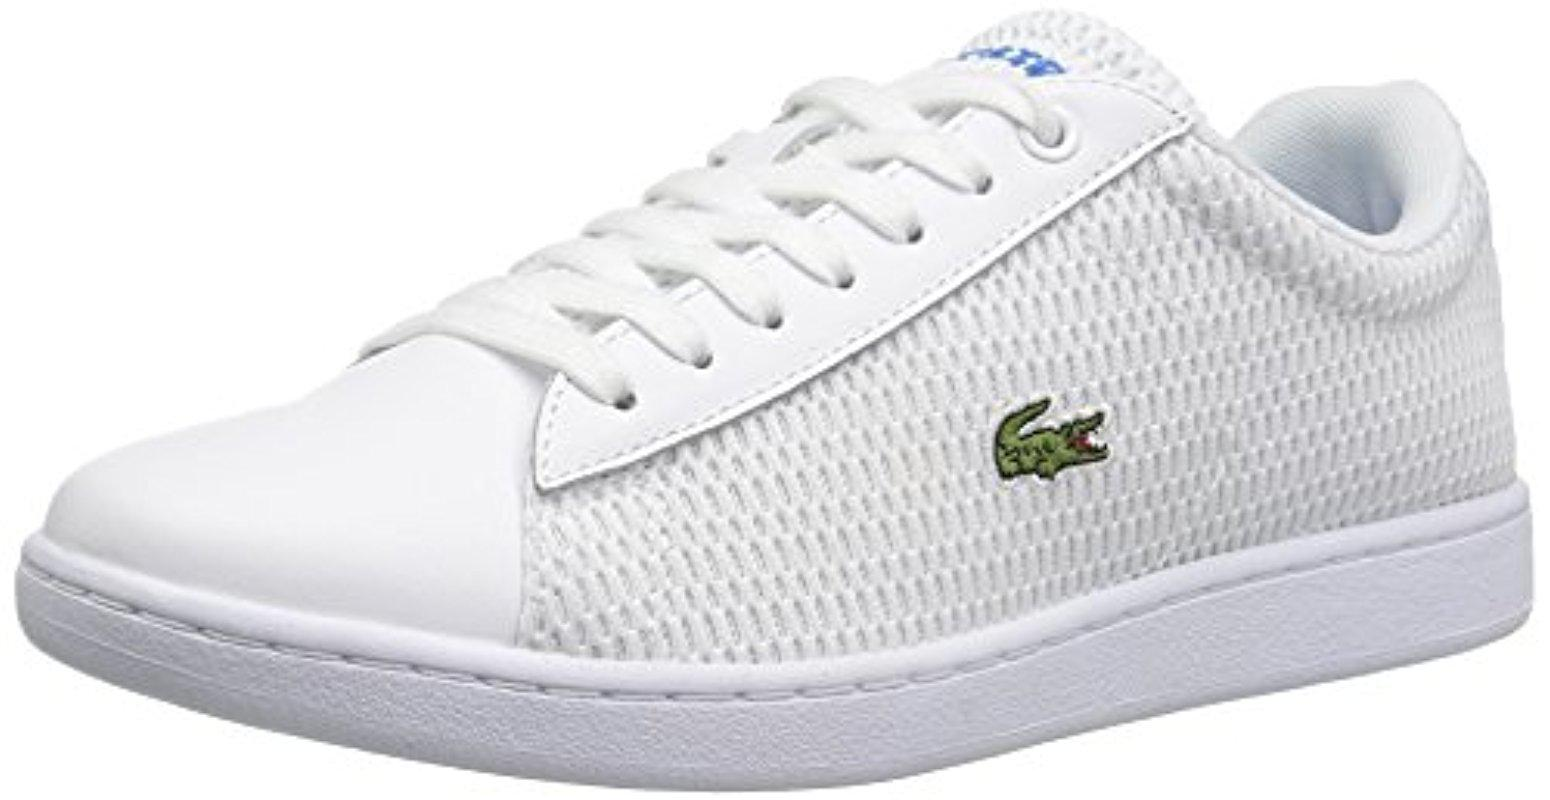 dad58192cbc5c4 Lyst - Lacoste Carnaby Evo 217 1 Shoe